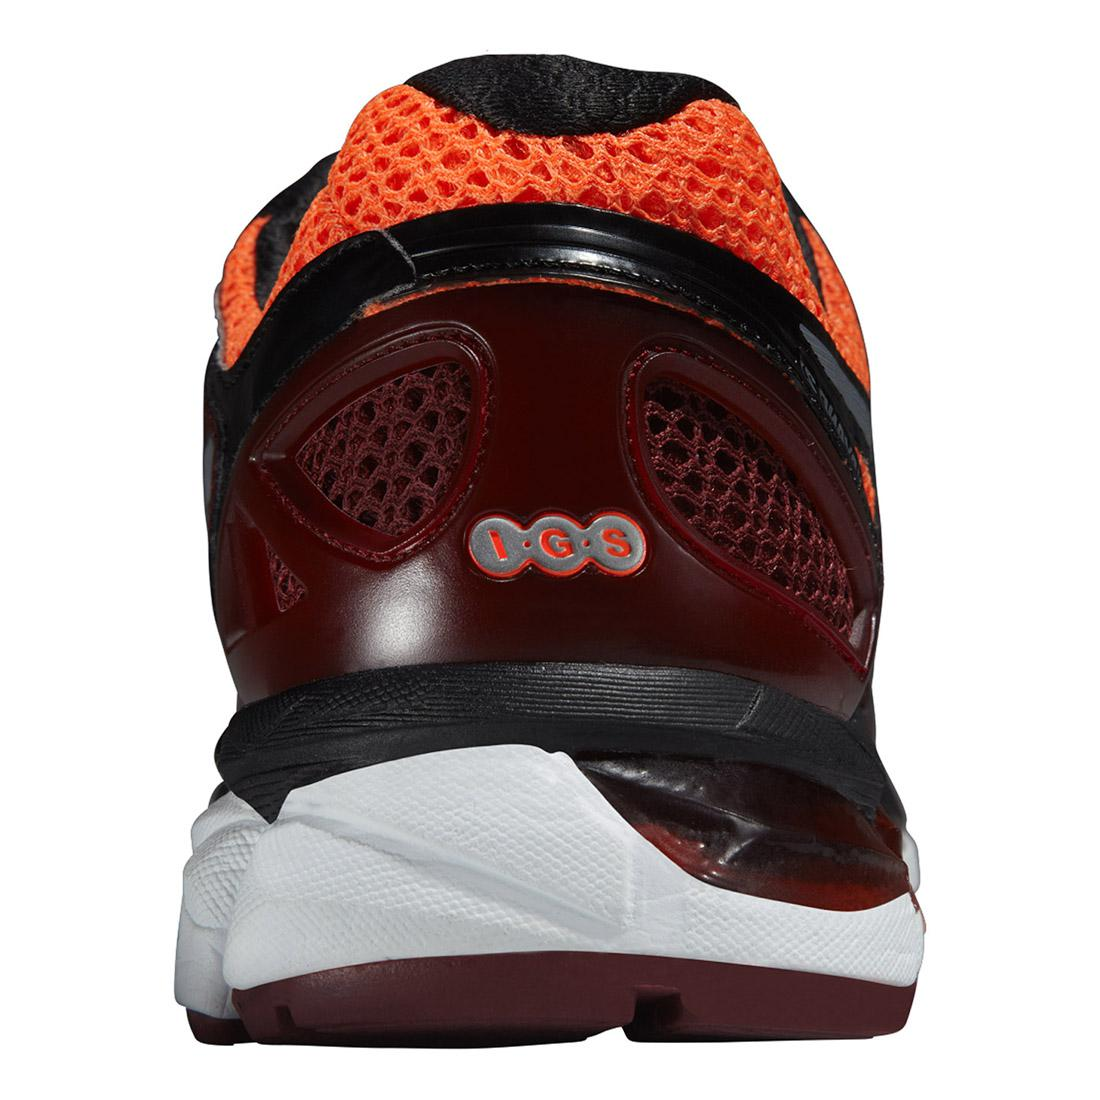 new arrival 52745 9fa0f Asics Mens GEL-Kayano 21 Running Shoes - Red Orange